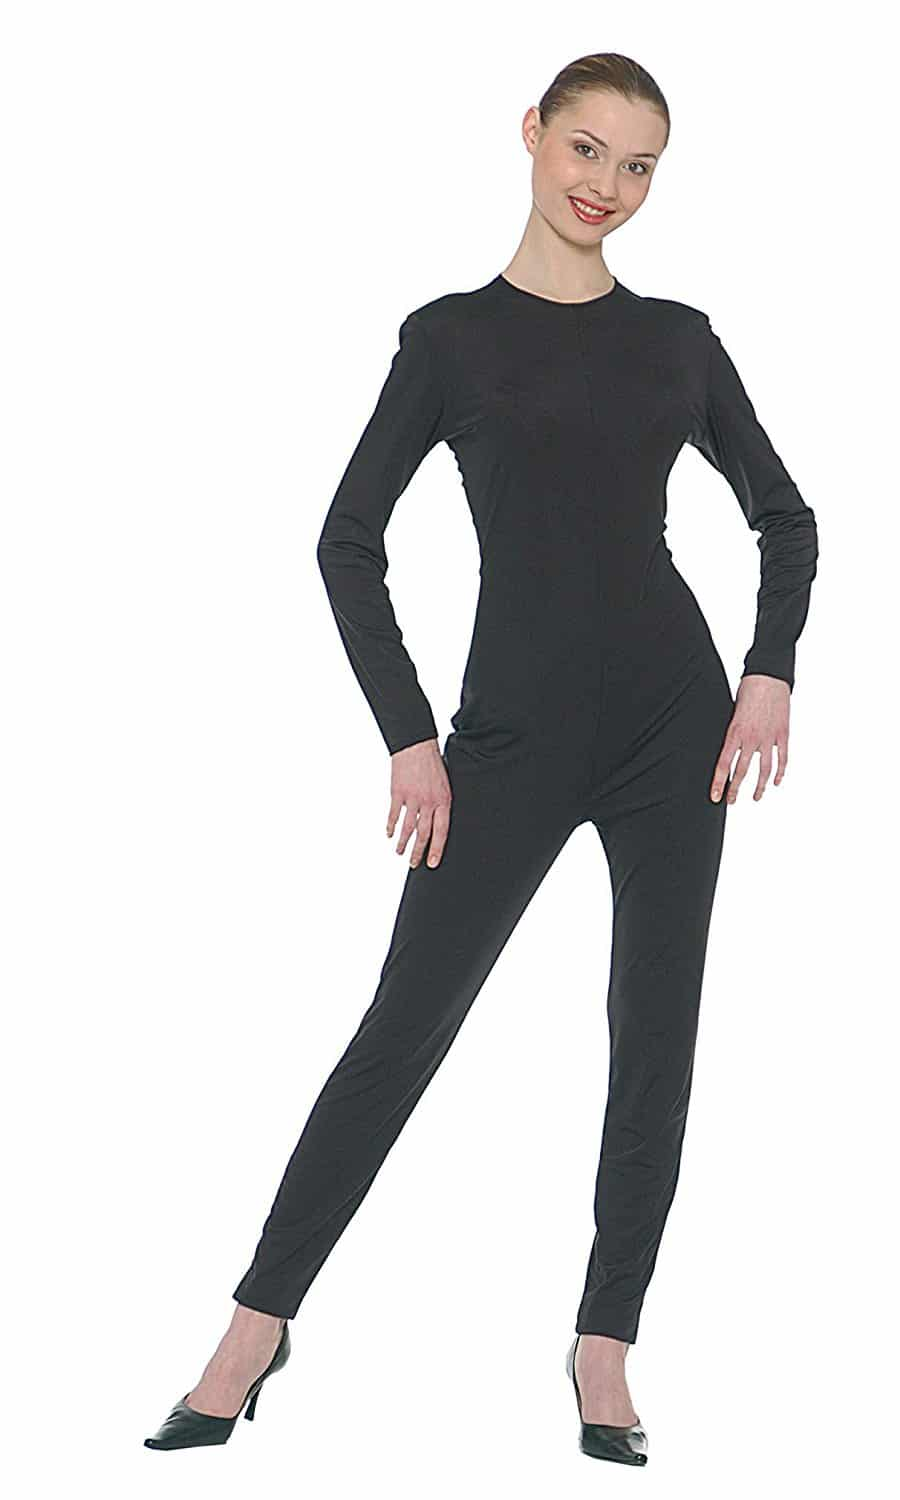 Maillot-para-mujer-color-negro-chica-complemento-disfraces